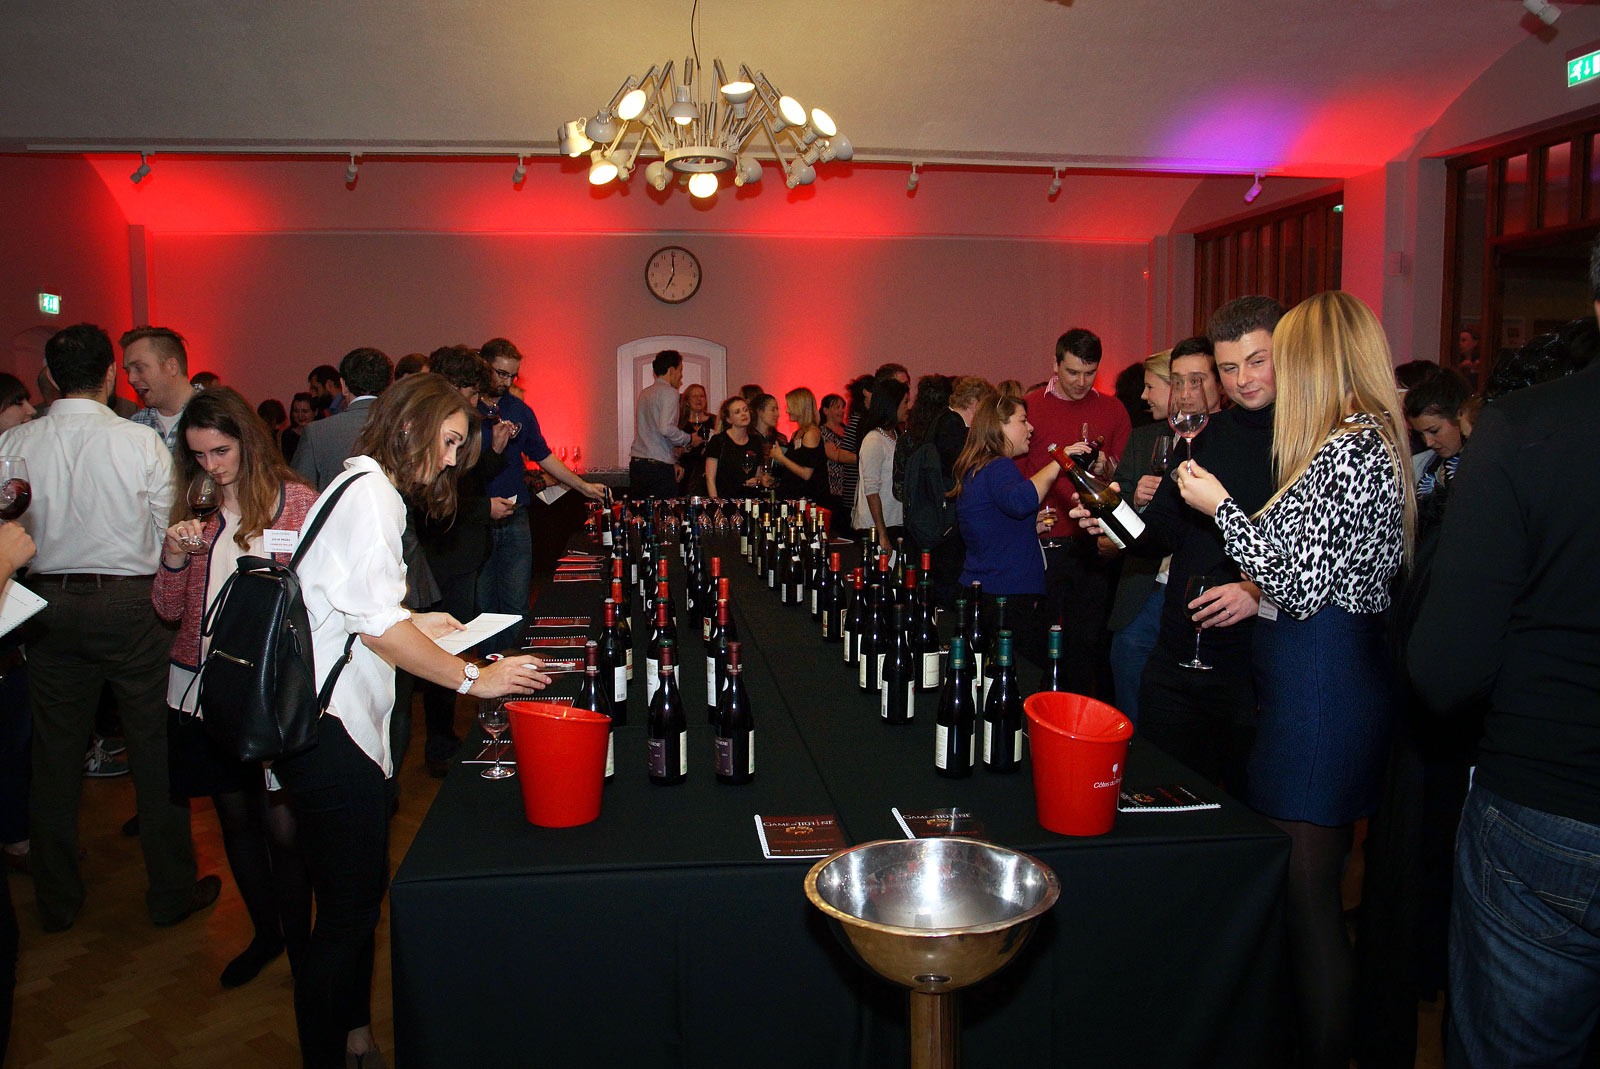 Wine reception at at City of London event venue The Dutch Hall